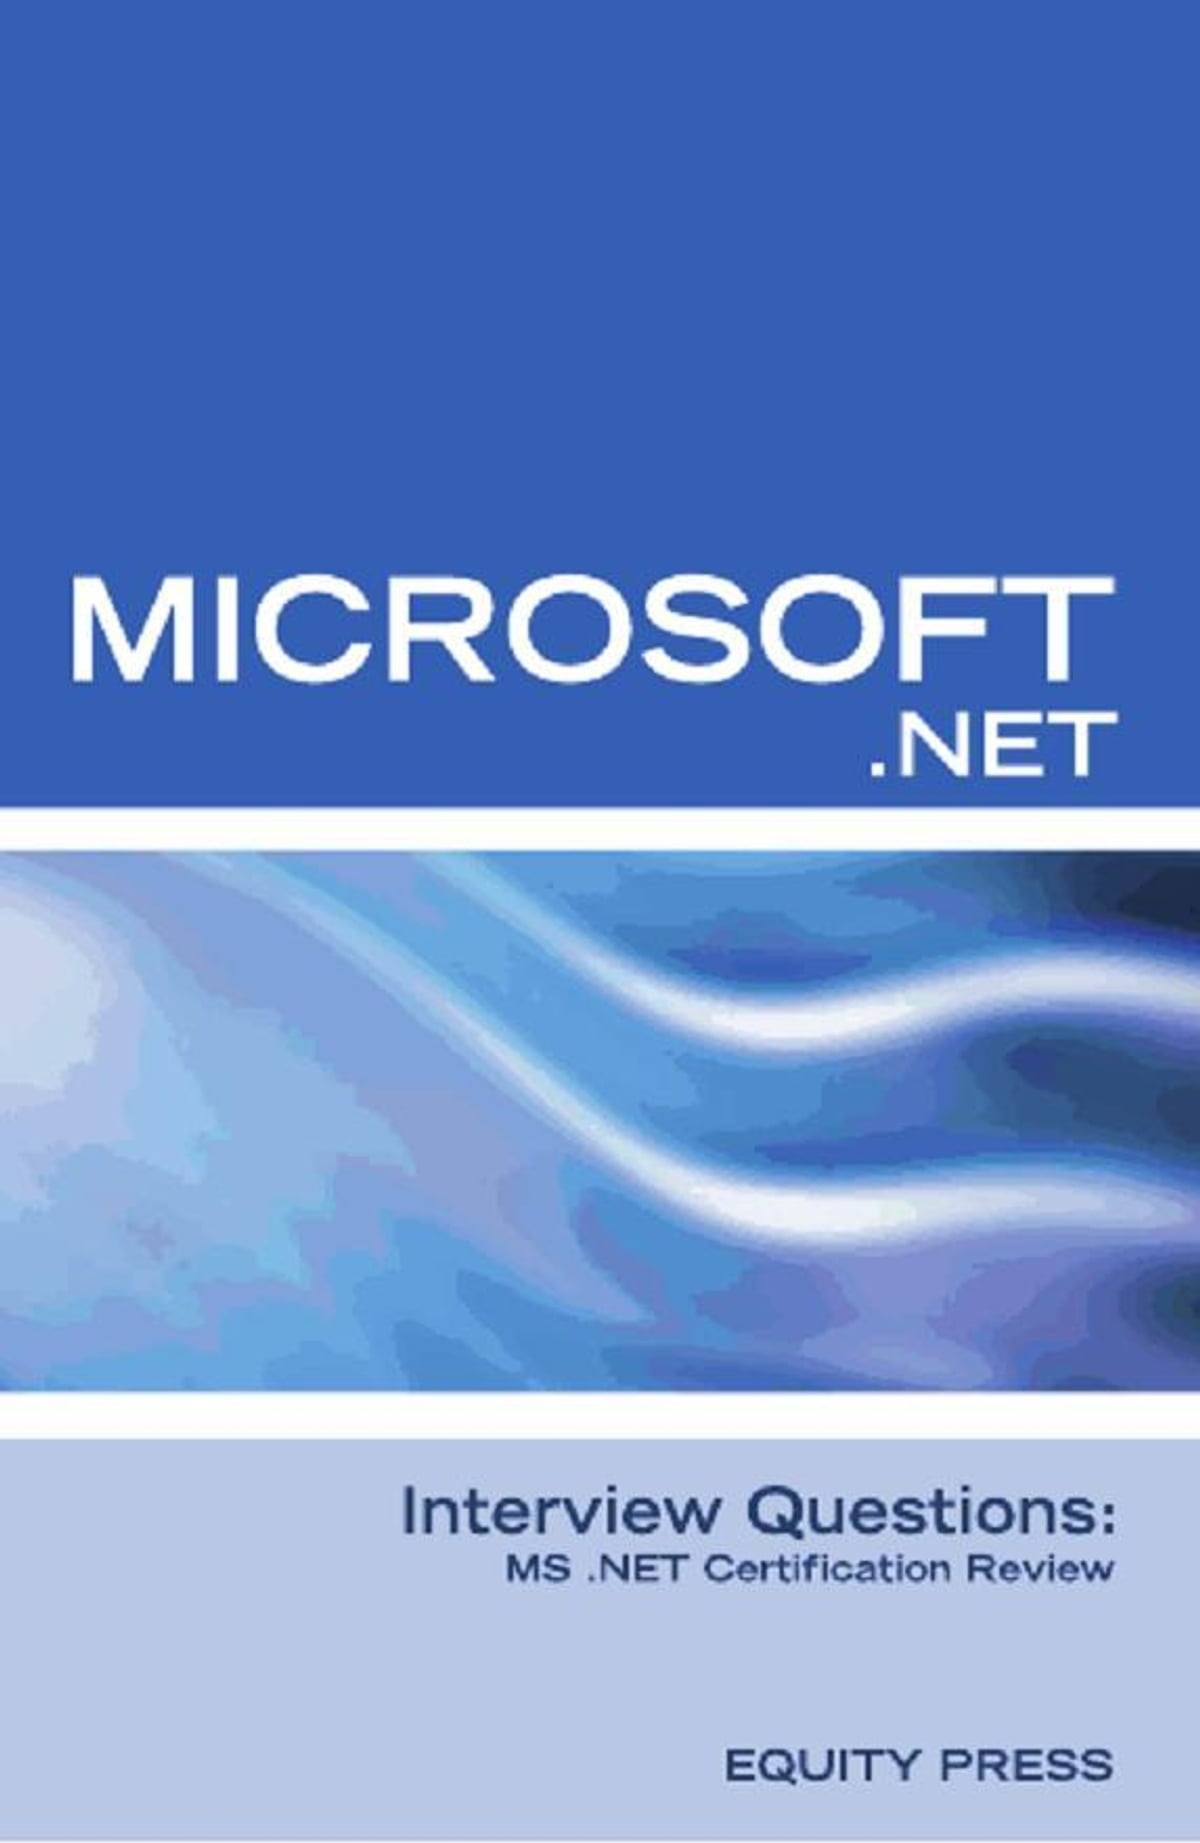 Microsoft Interview Questions Ms Certification Review